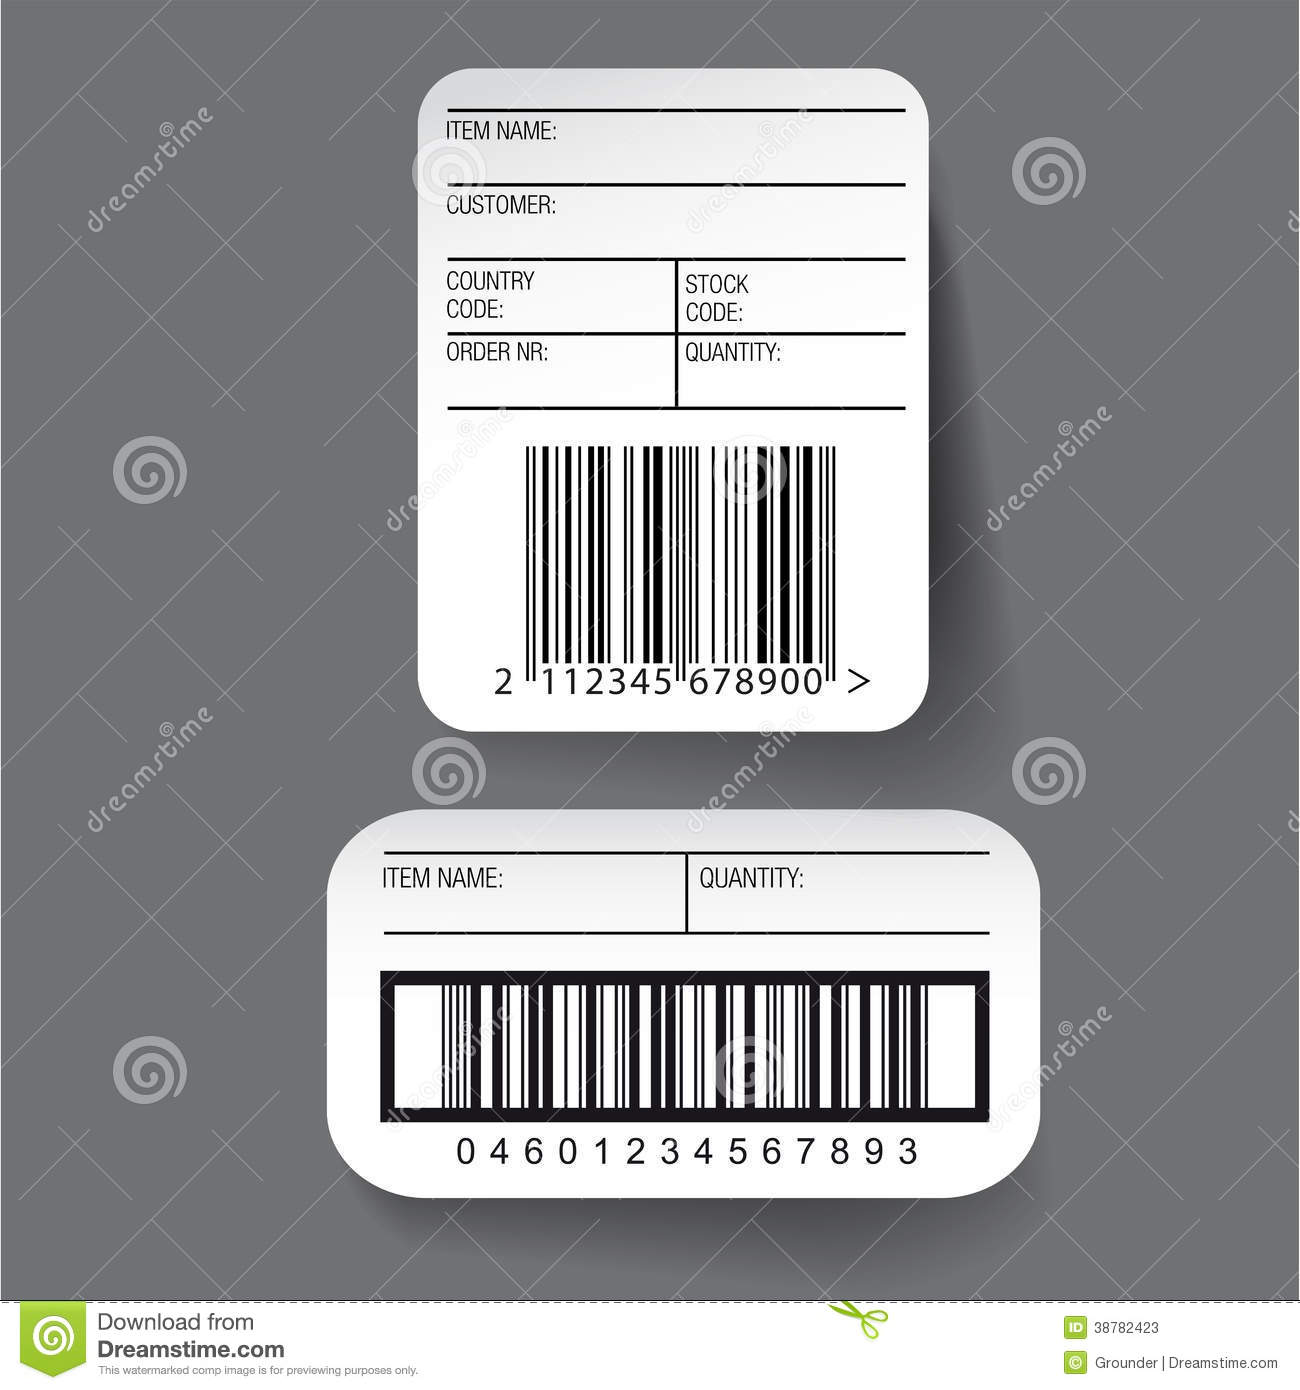 Inventory labels template images professional report for Z label templates